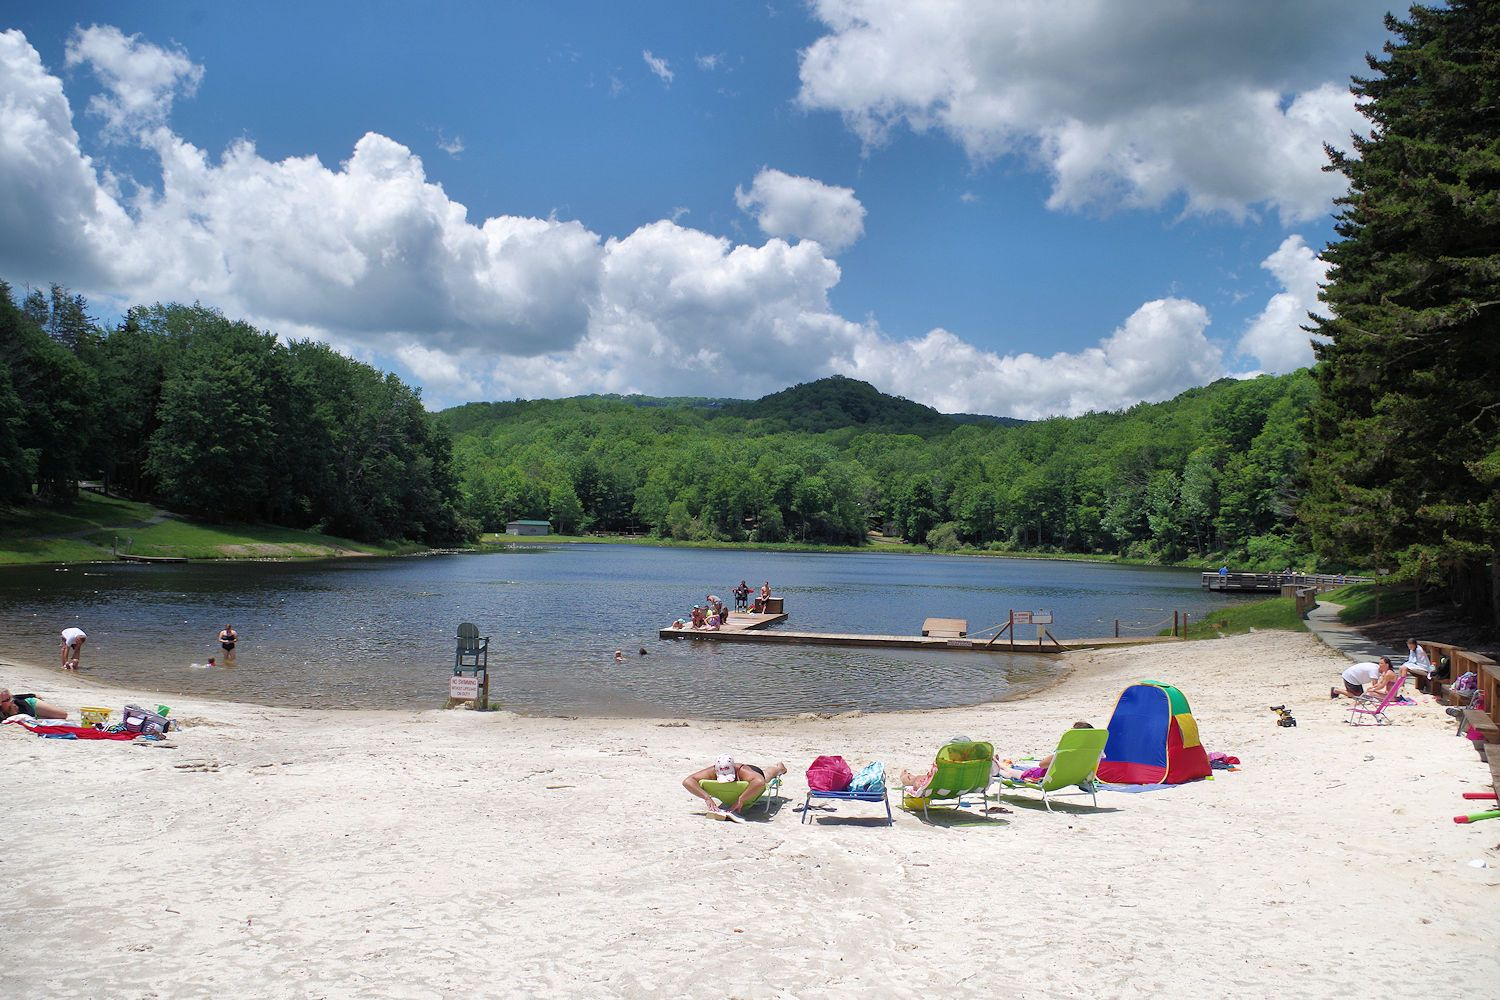 Wildcat Lake is located in Banner Elk, North Carolina. A ...